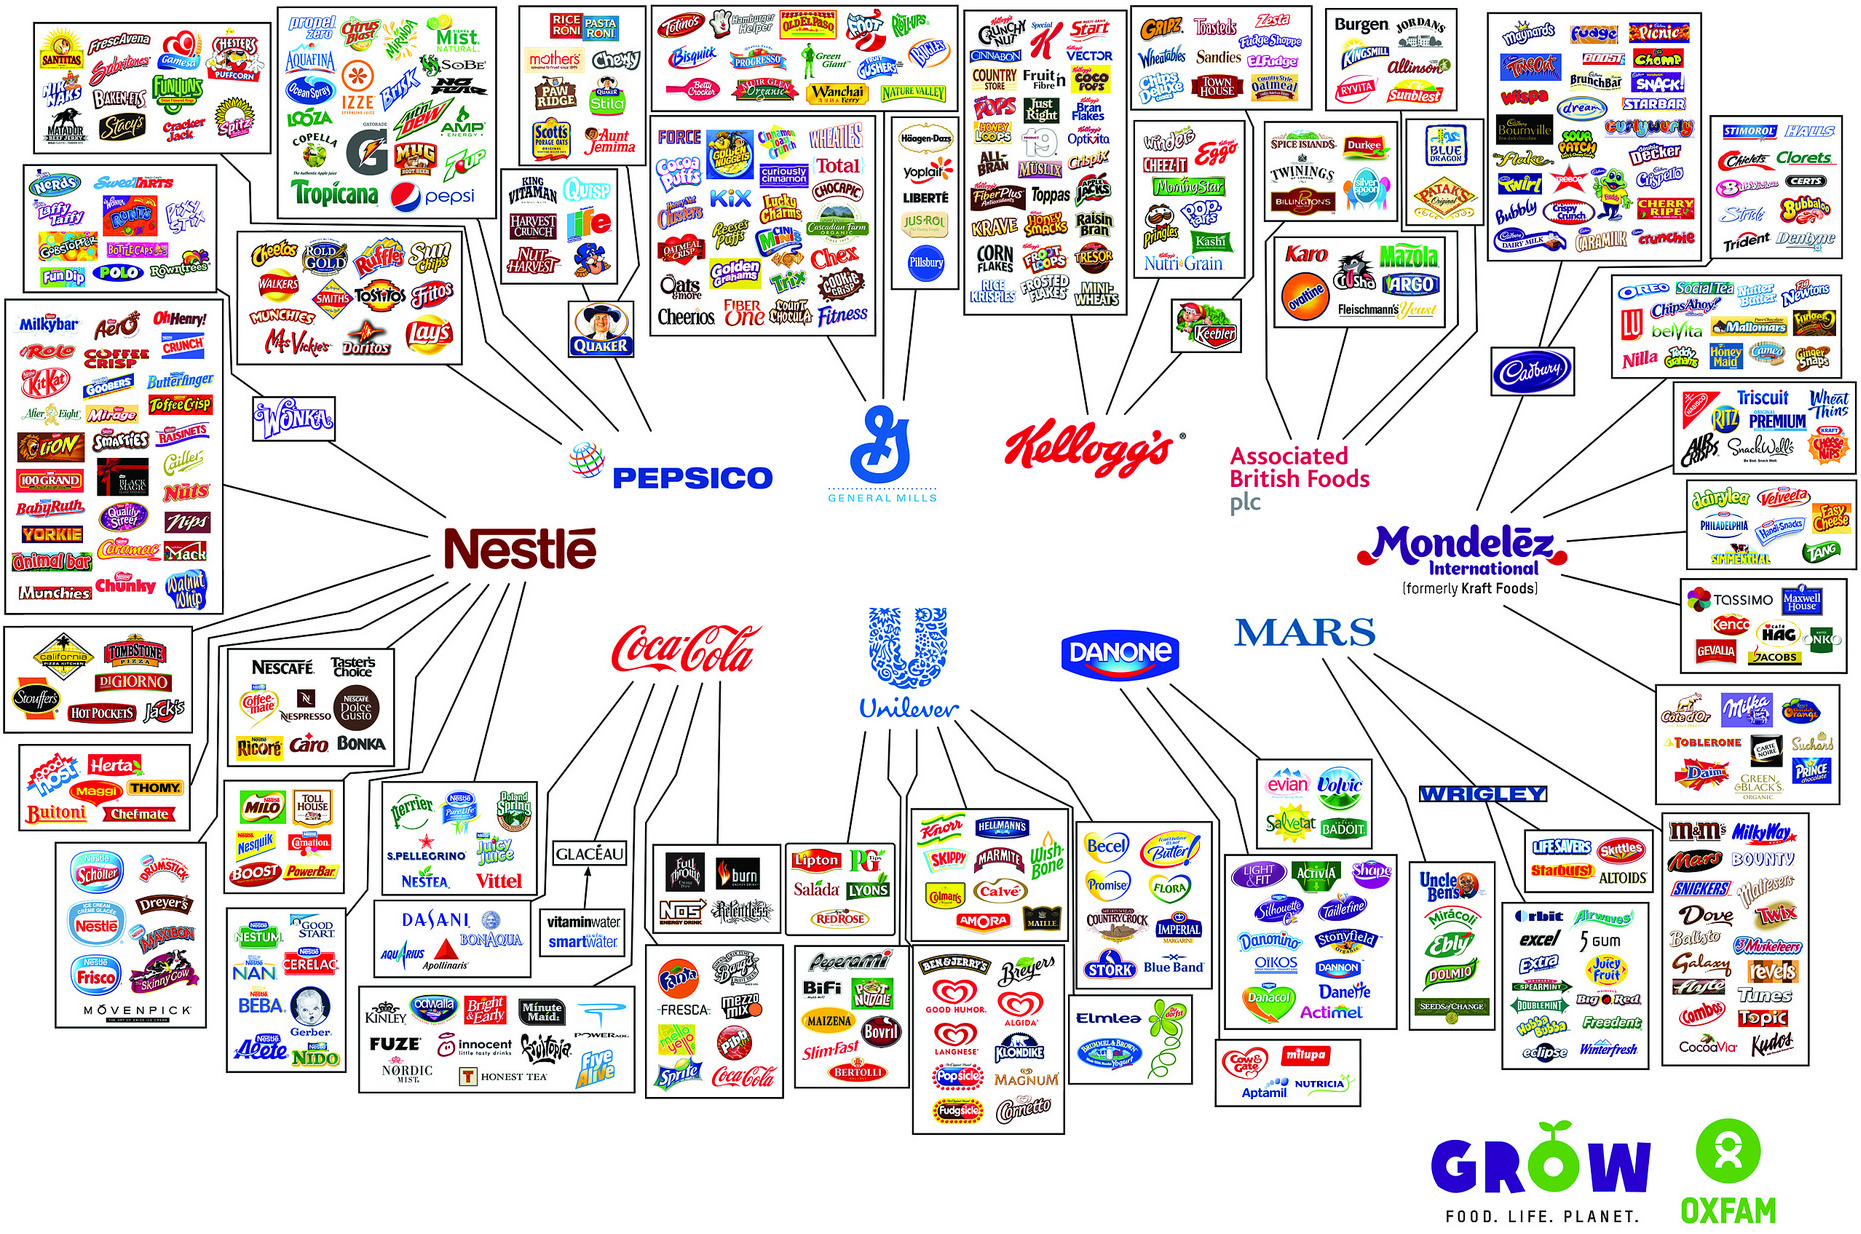 The 10 Companies that Own The Food Industry